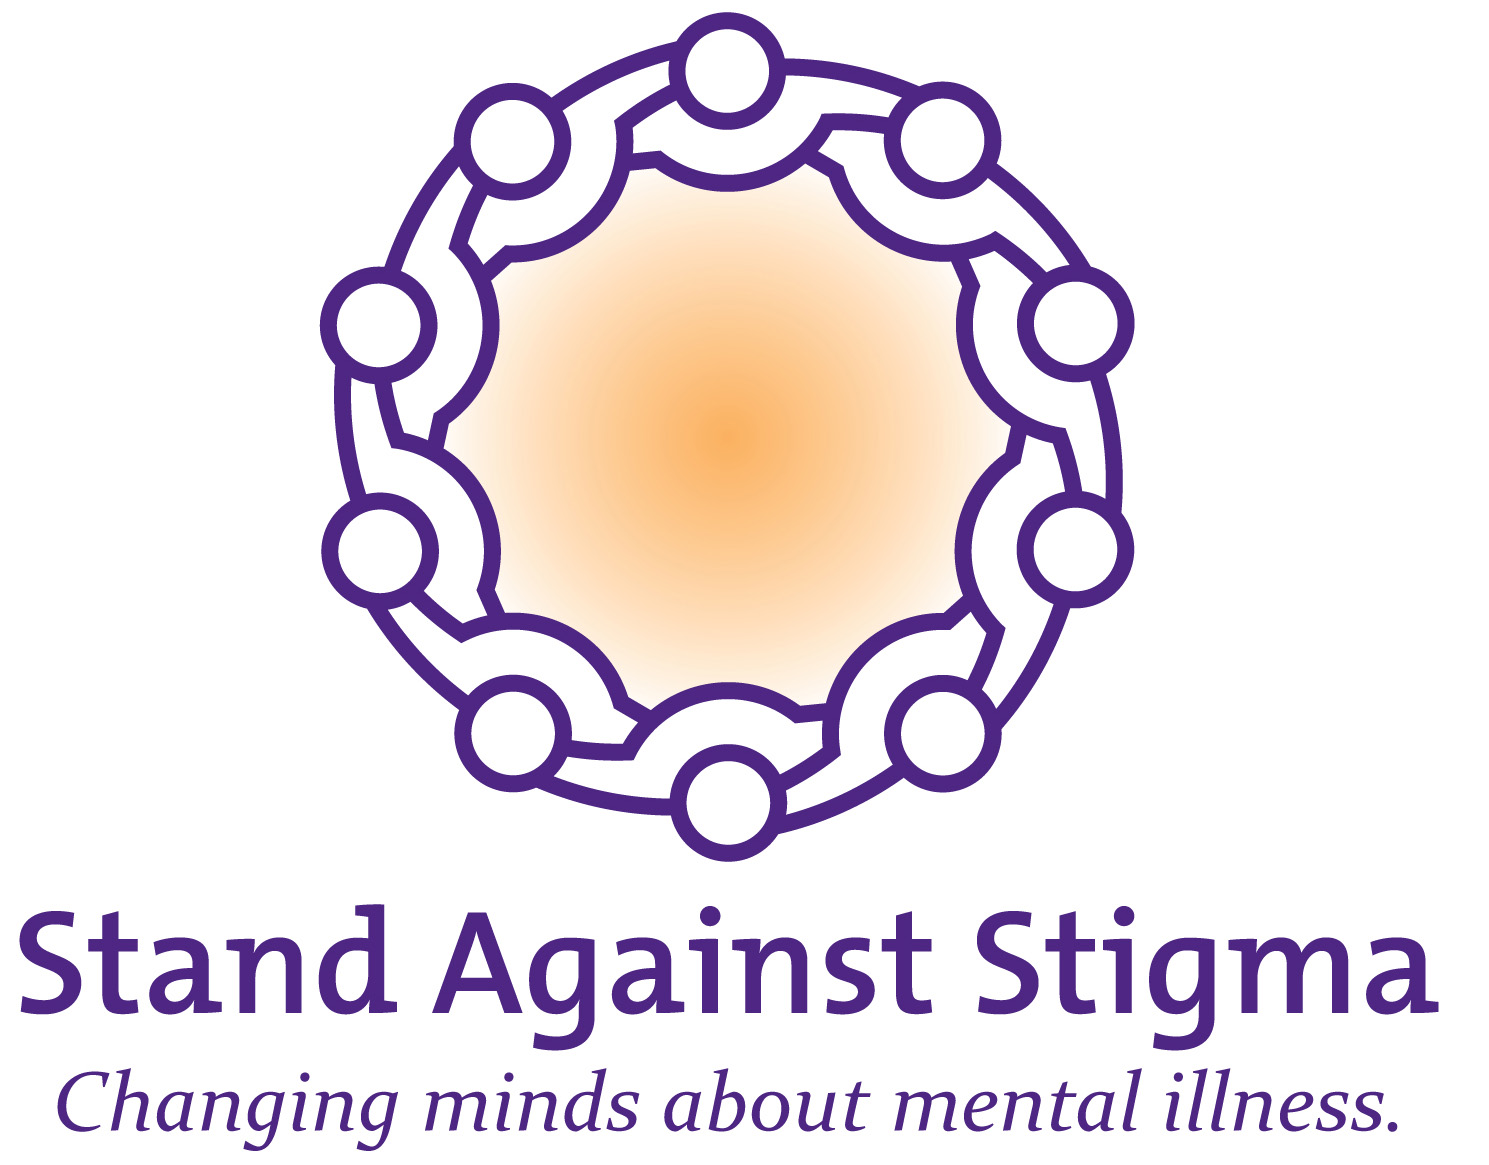 Stand Against Stigma Committee